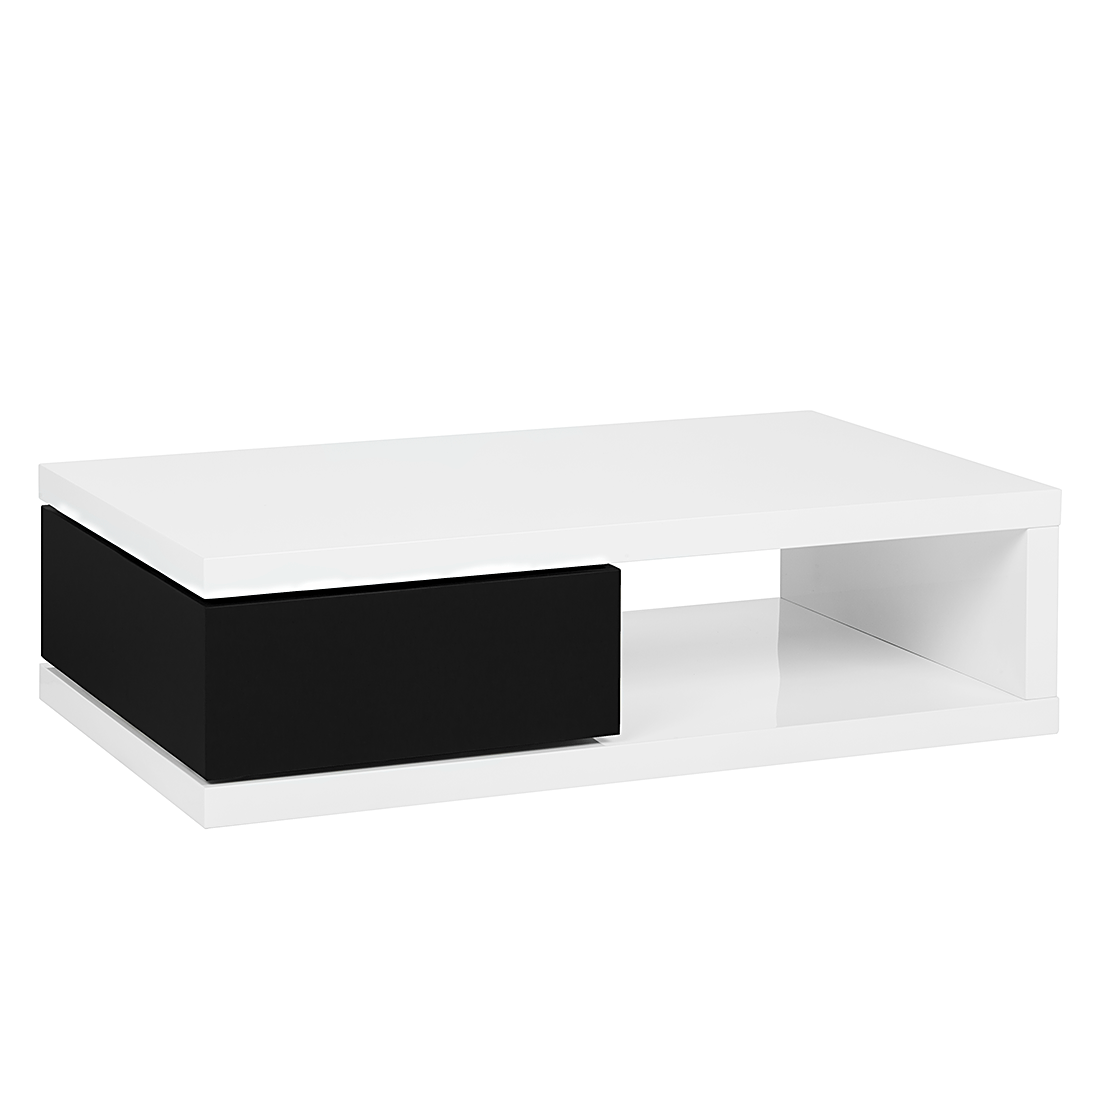 Robas Lund Couchtisch Ida Wei 120 X 60 Interesting Stunning Perfect Steiner Shopping Mbel